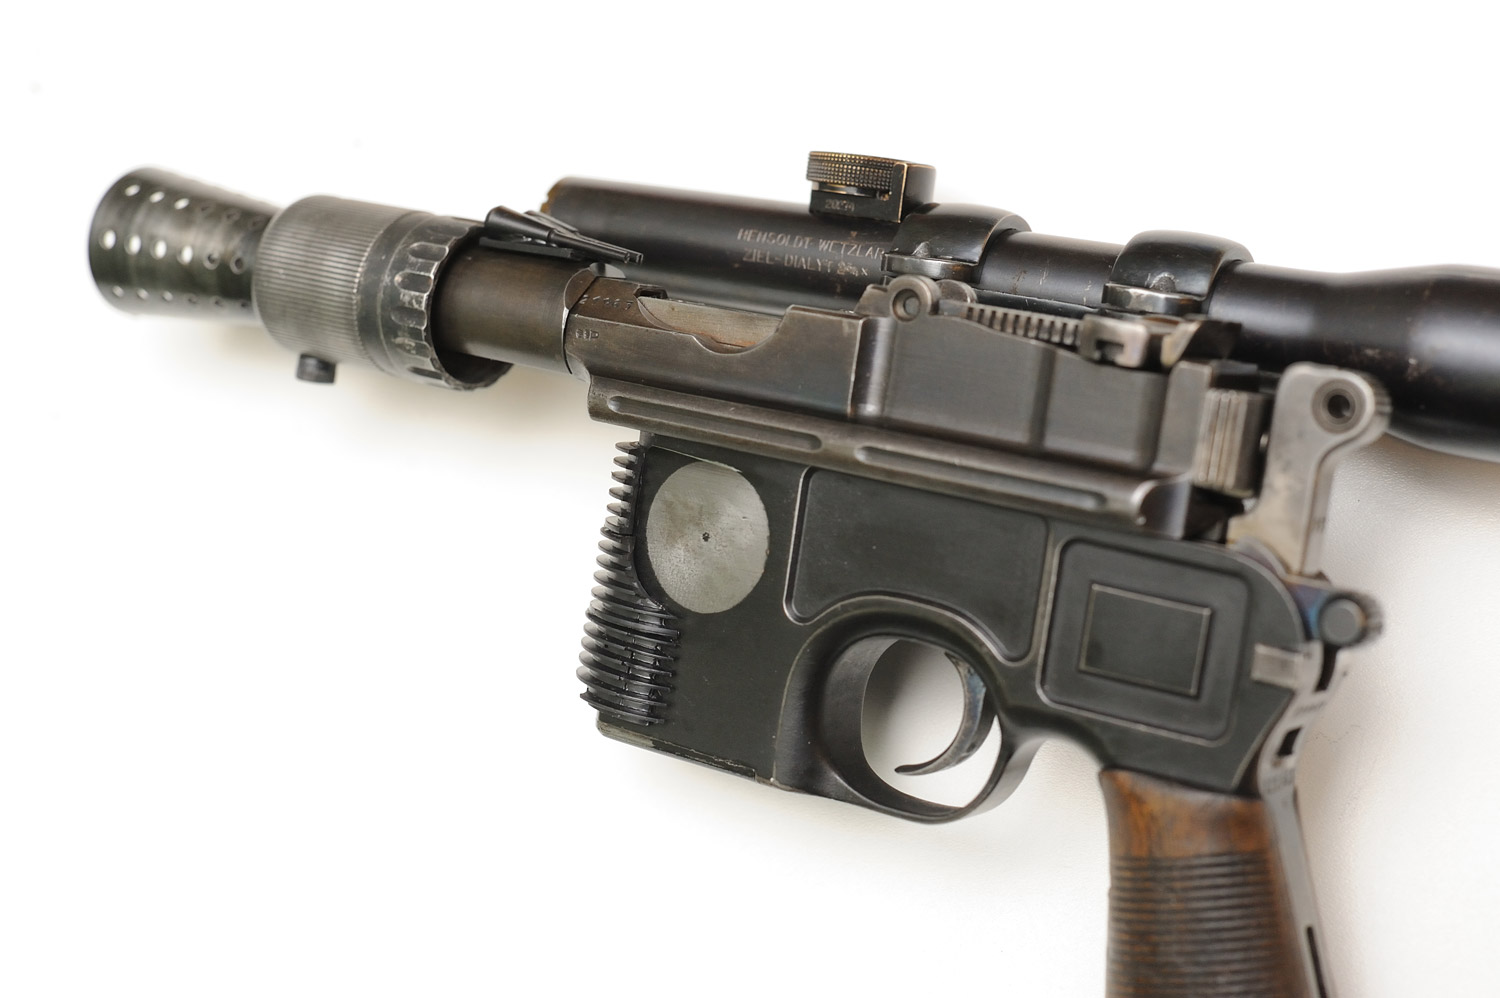 Live Fire Han Solo Dl 44 Blaster First Of 2016